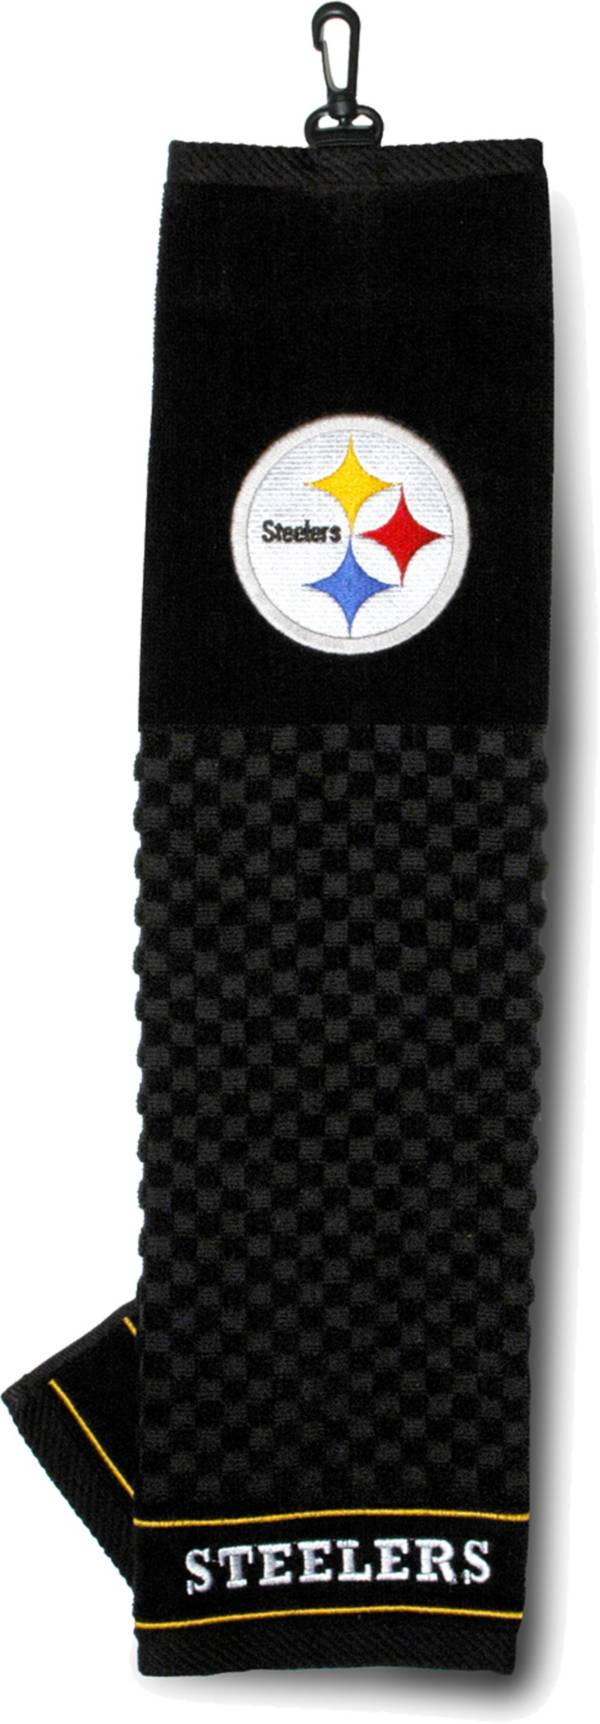 Team Golf Pittsburgh Steelers Embroidered Towel product image